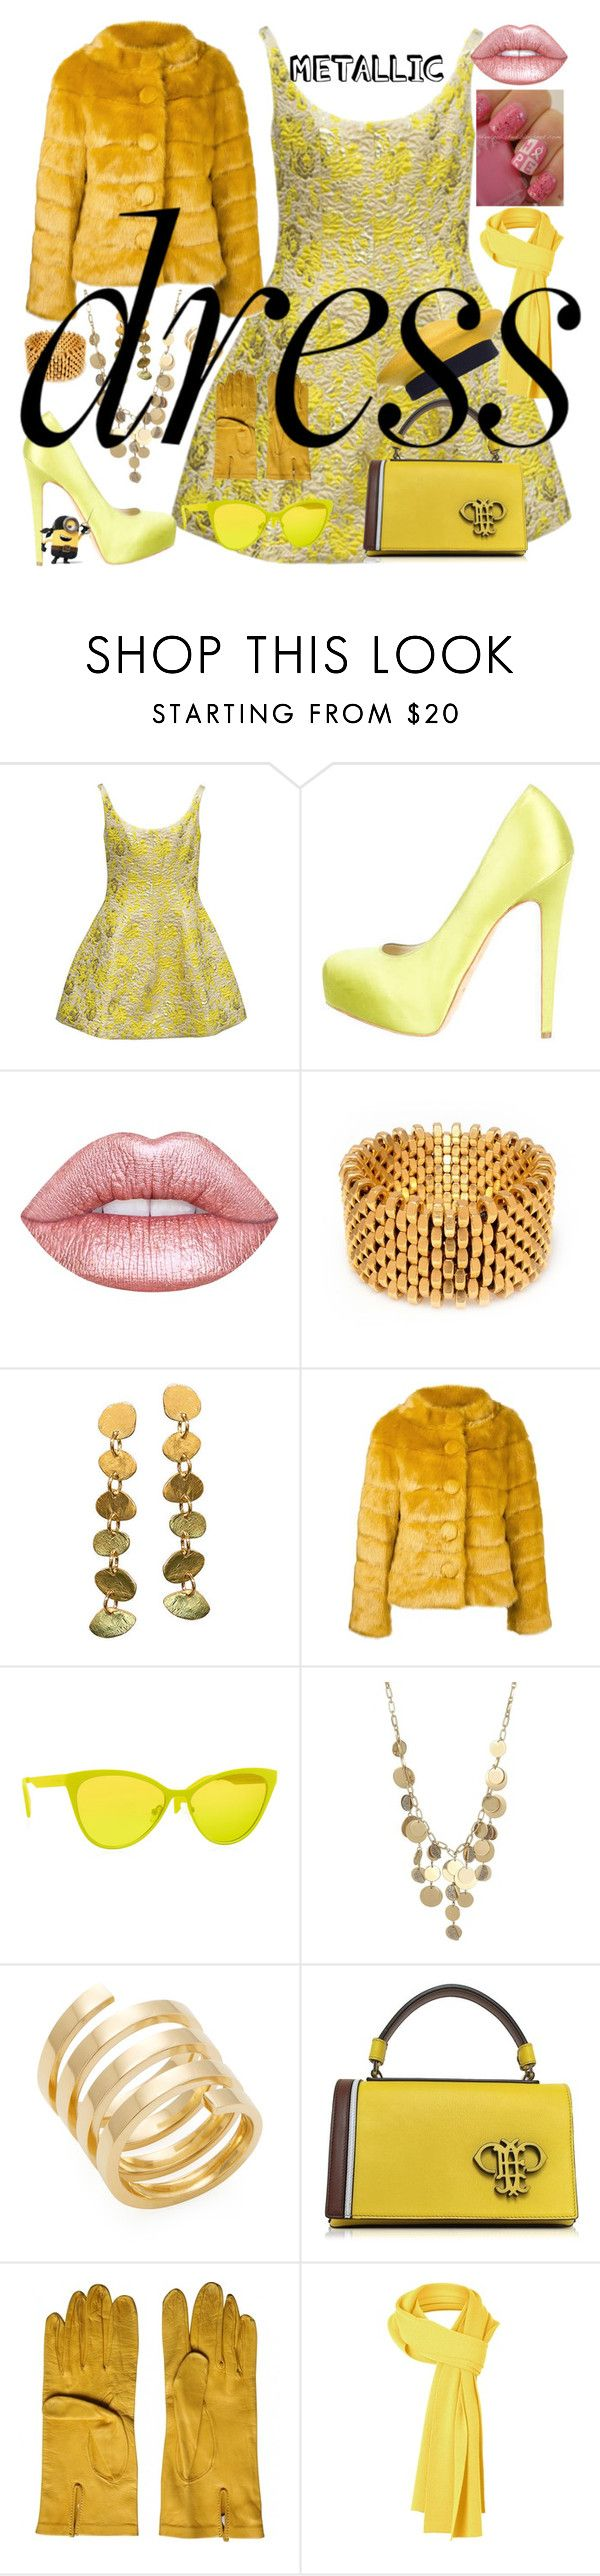 """PAINT IT BLACK ! metallic dress 2"" by kuropirate on Polyvore featuring Cynthia Rowley, Brian Atwood, Lime Crime, Alice Menter, Twin-Set, Italia Independent, Kenneth Cole, Jennifer Zeuner, Take-two and Emilio Pucci"